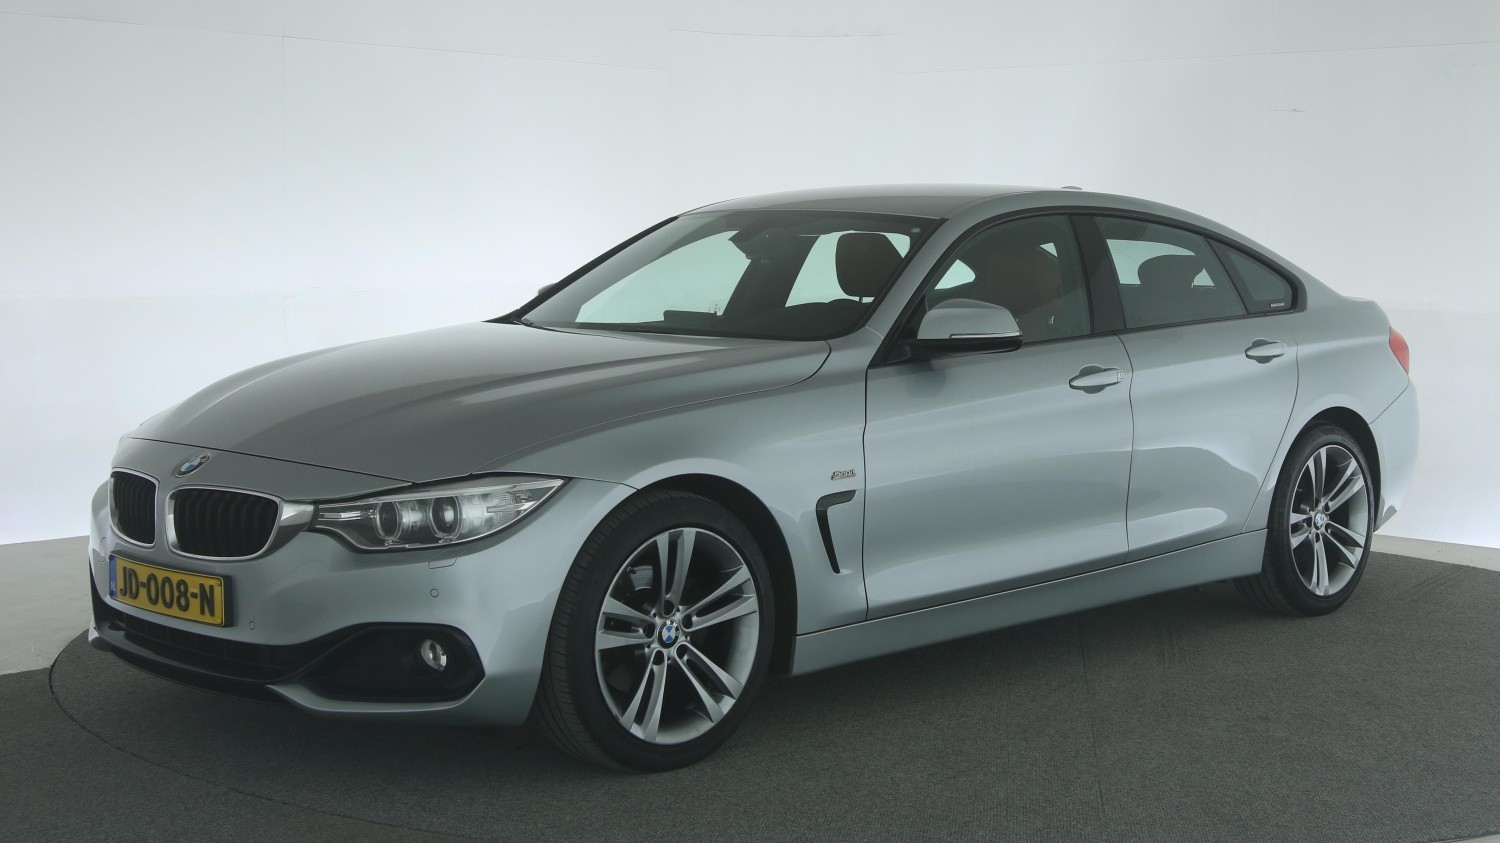 BMW 4-serie Hatchback 2016 JD-008-N 1